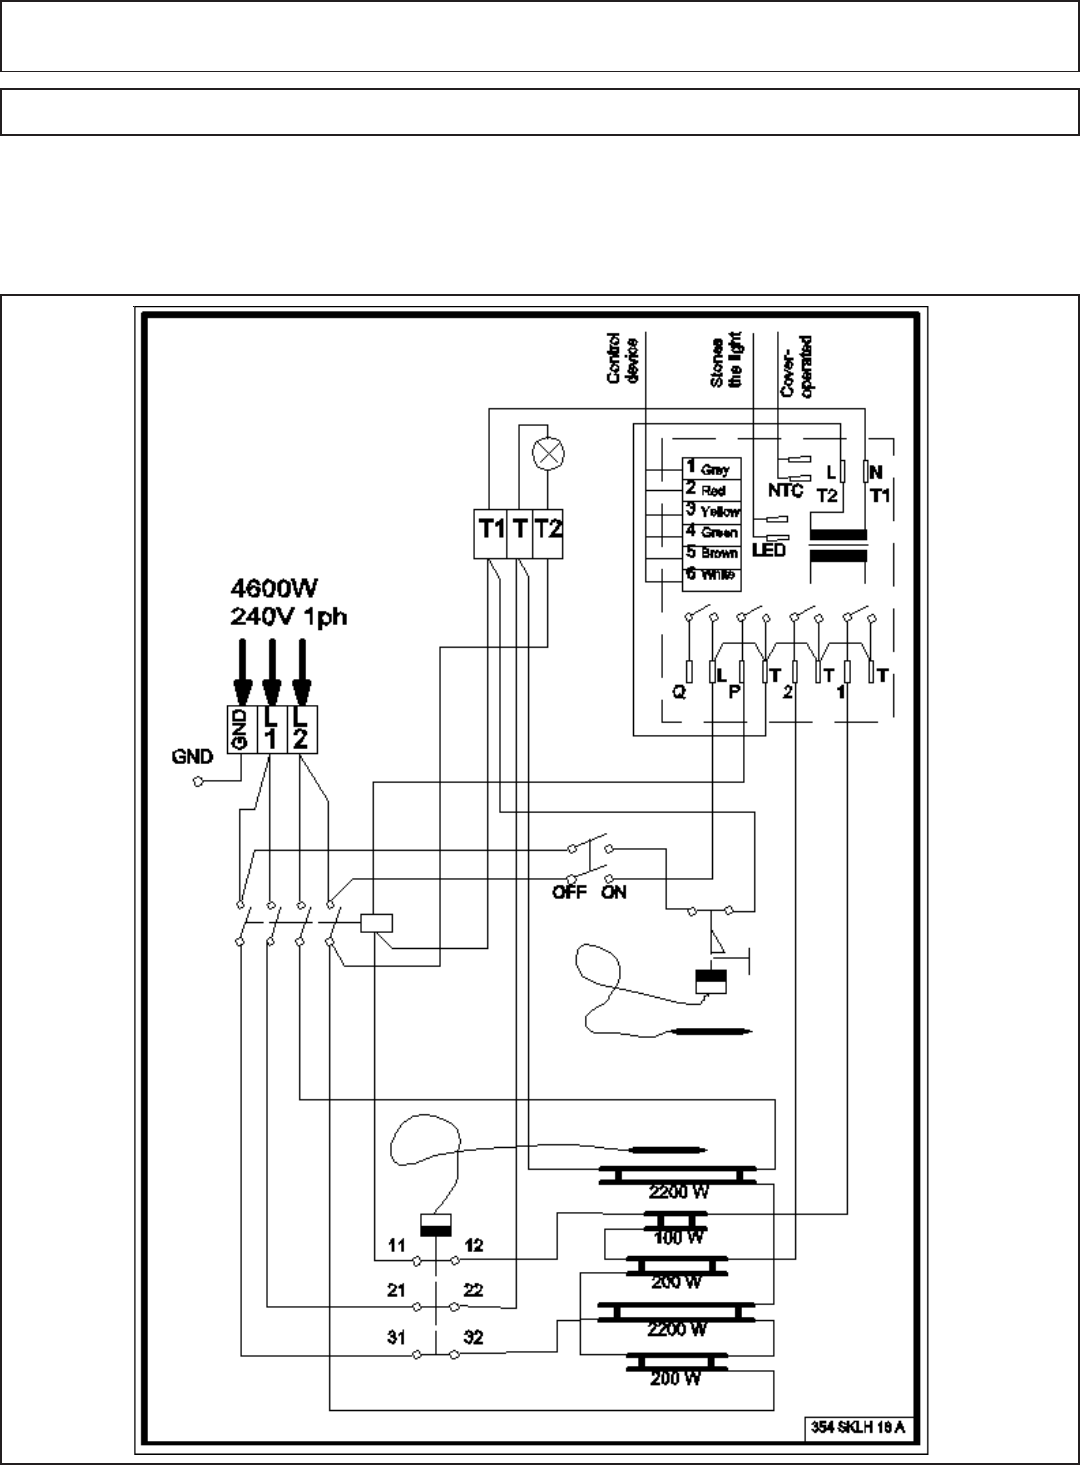 Saunatec Hot Tub 1108 46 Manual Page 8 Of 13 Wiring Diagram Together With Controller Installation Operation Instructions